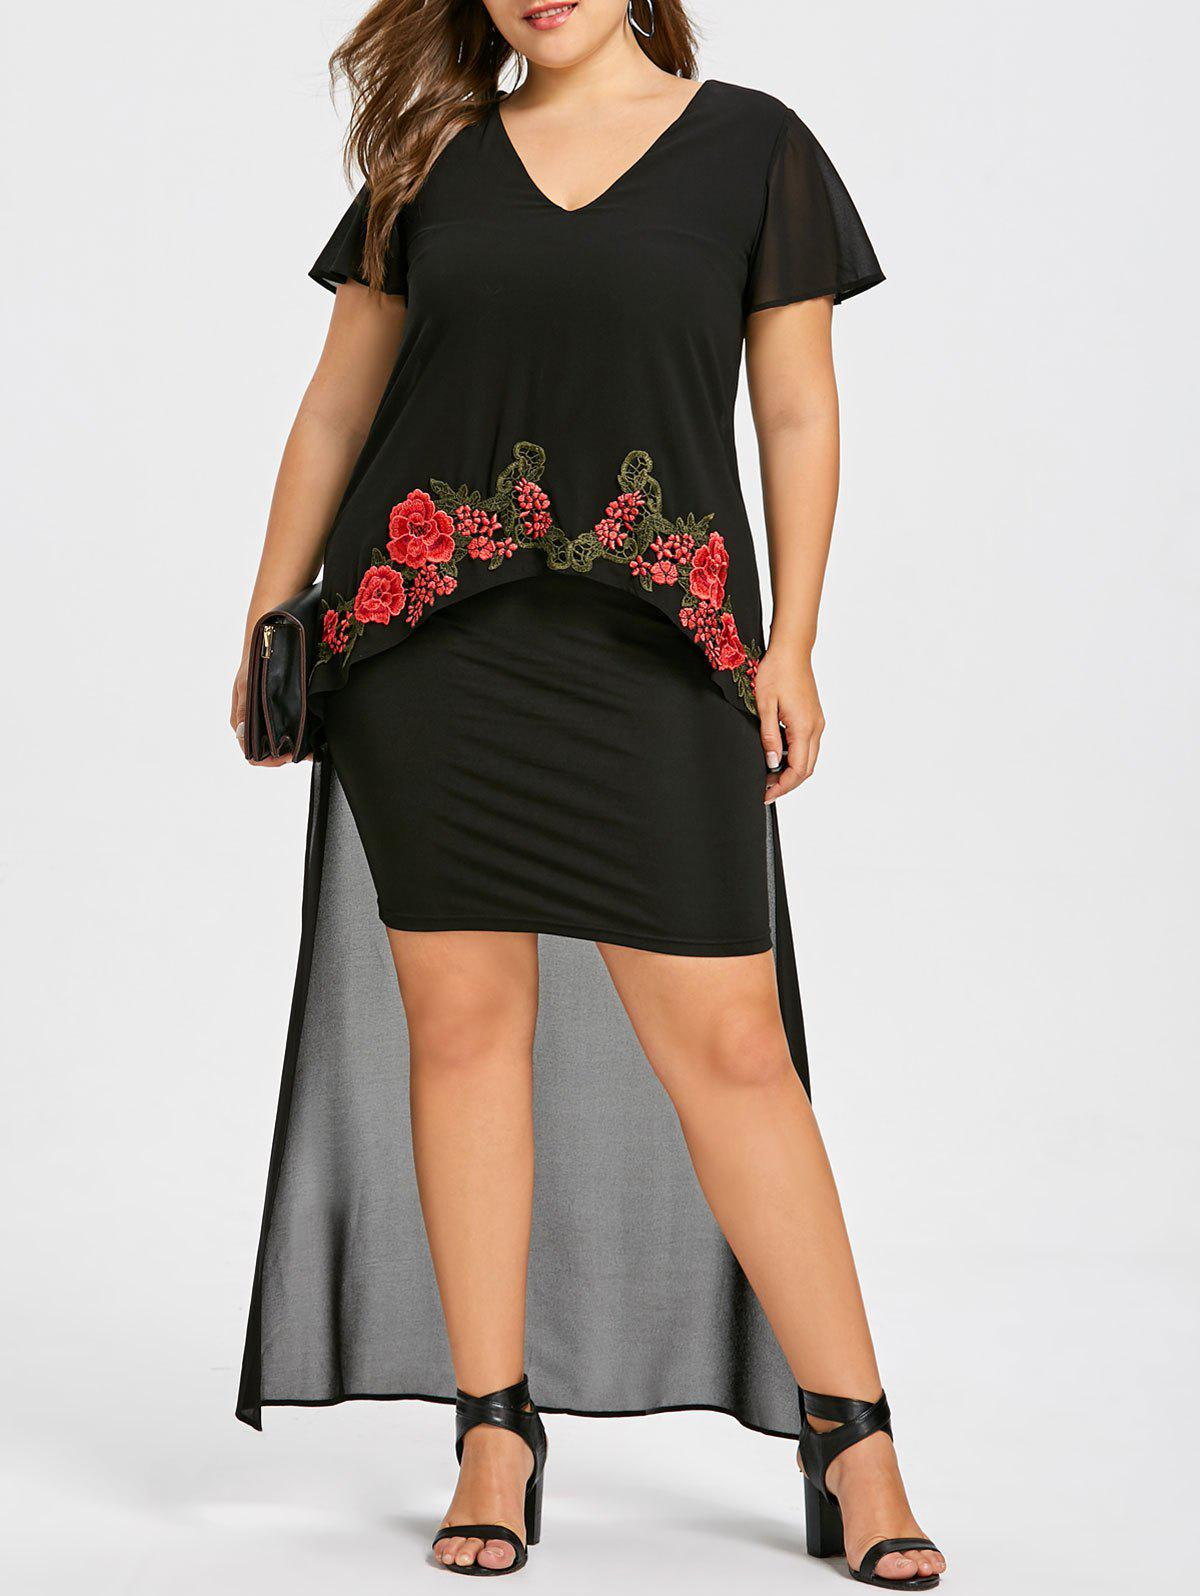 Plus Size V Neck High Low Embroidery Dress - BLACK XL